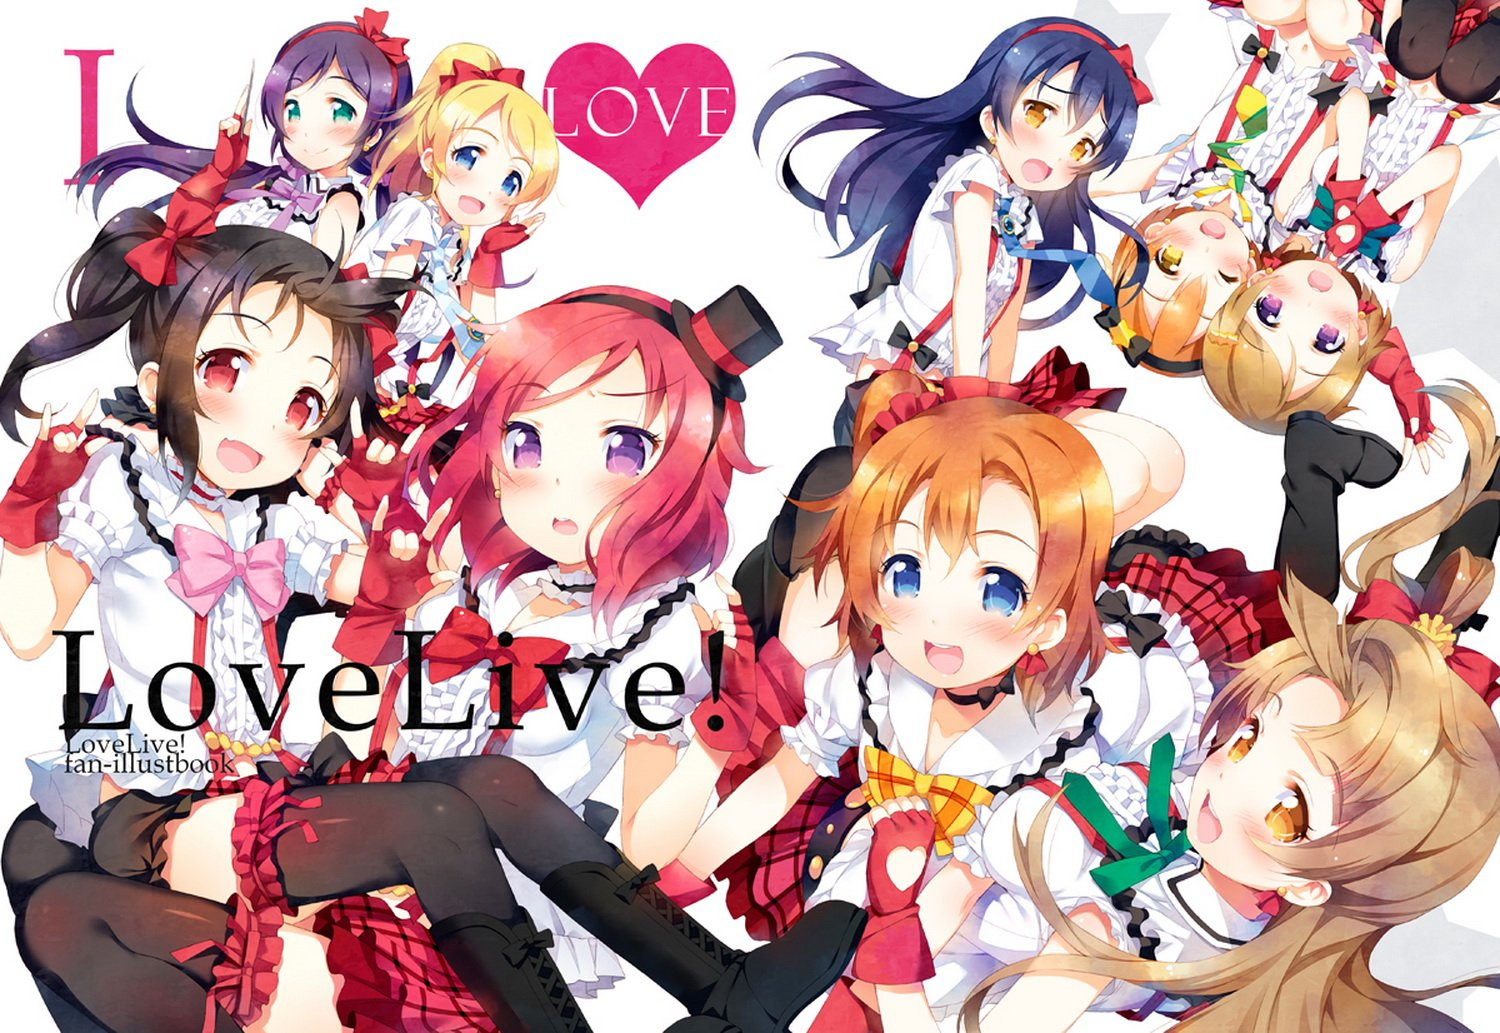 Love Images Live Wallpaper : Love Live Wallpapers (30 Wallpapers) Adorable Wallpapers